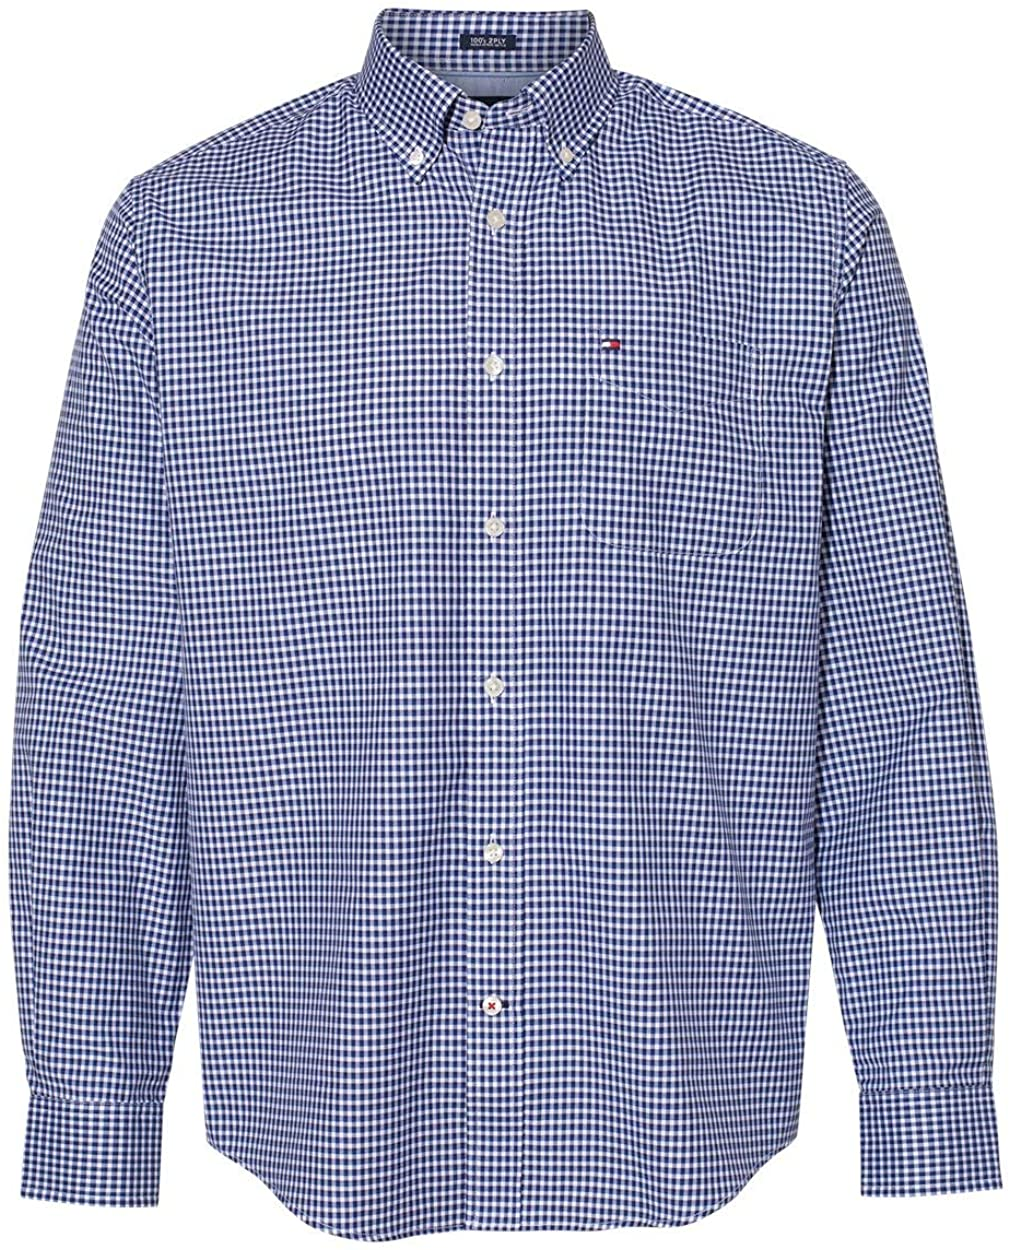 Tommy Hilfiger Men's 100s Two-Ply Gingham Shirt, Blue/Navy, XX-Large